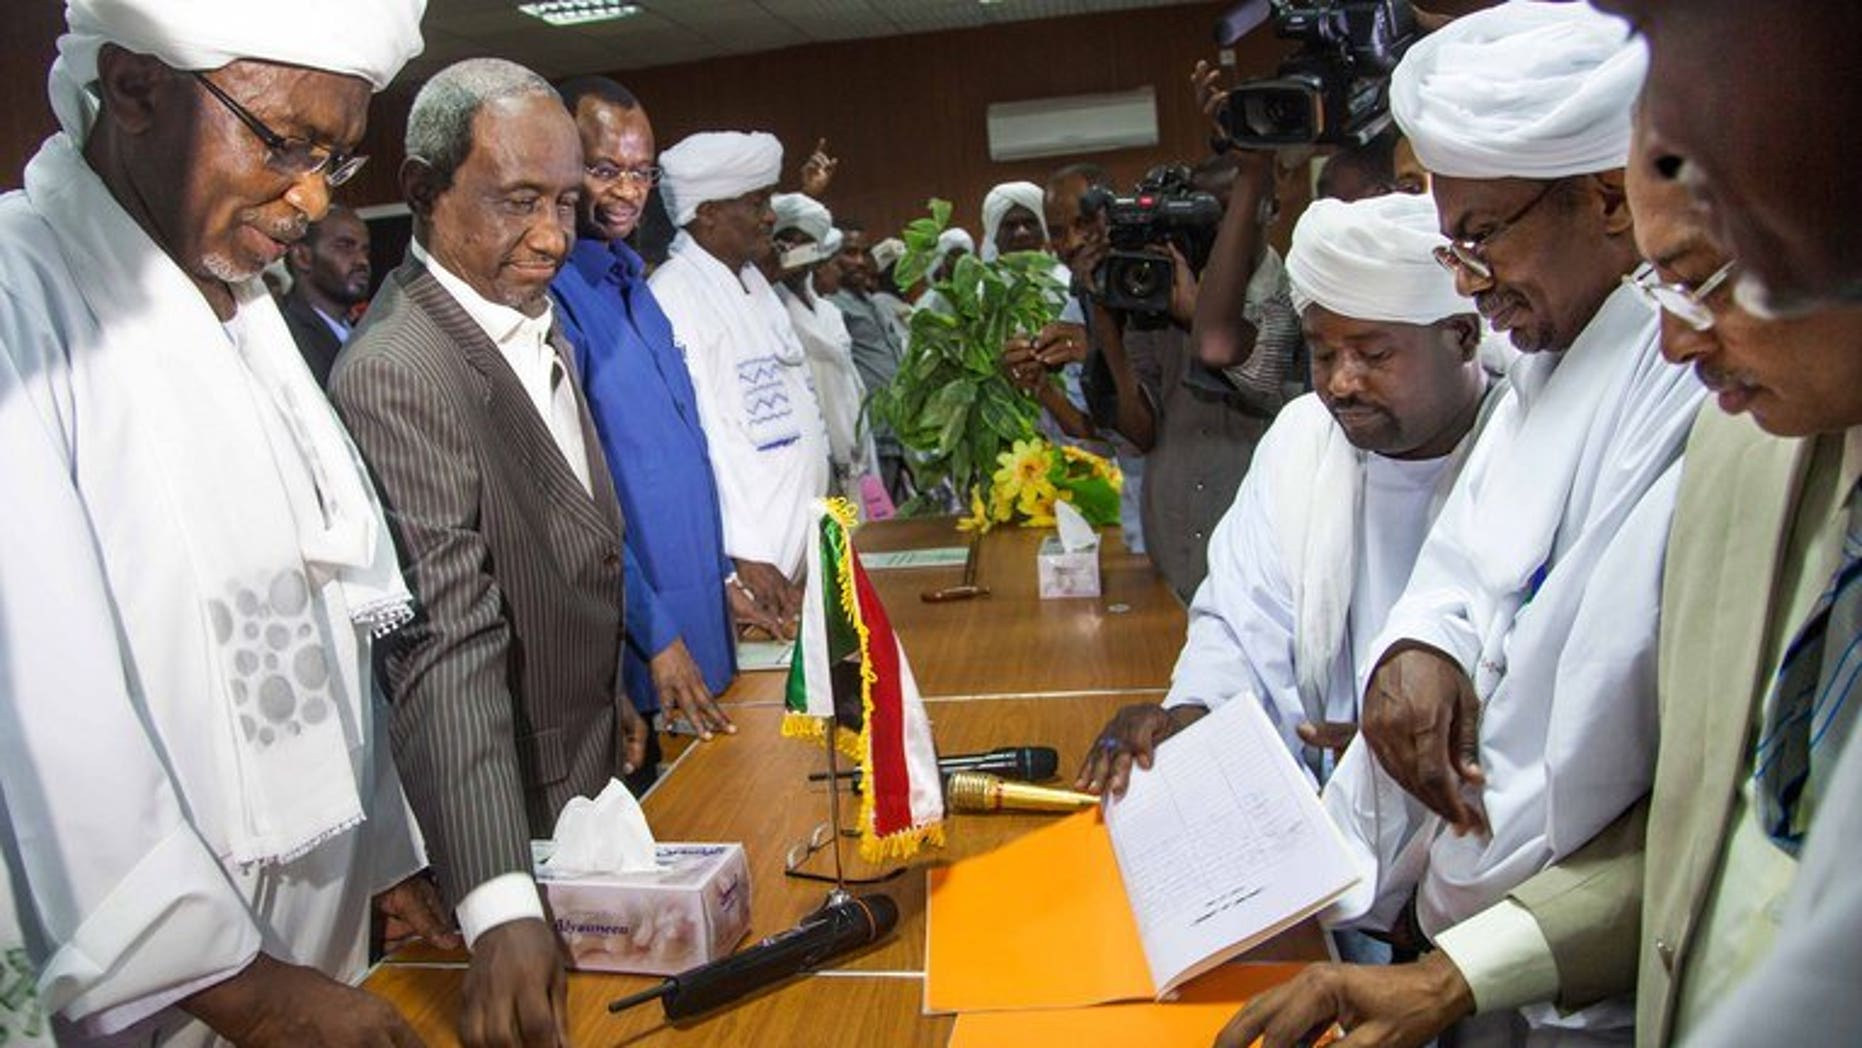 Government officials (left) with leaders of the Abbala and Beni Hussein tribes in El Fasher, N.Darfur, last week. Fighting between rival Arab tribes in Sudan's Darfur region spread on Monday, after clashes last week left scores dead, a leader of one of the tribes said.